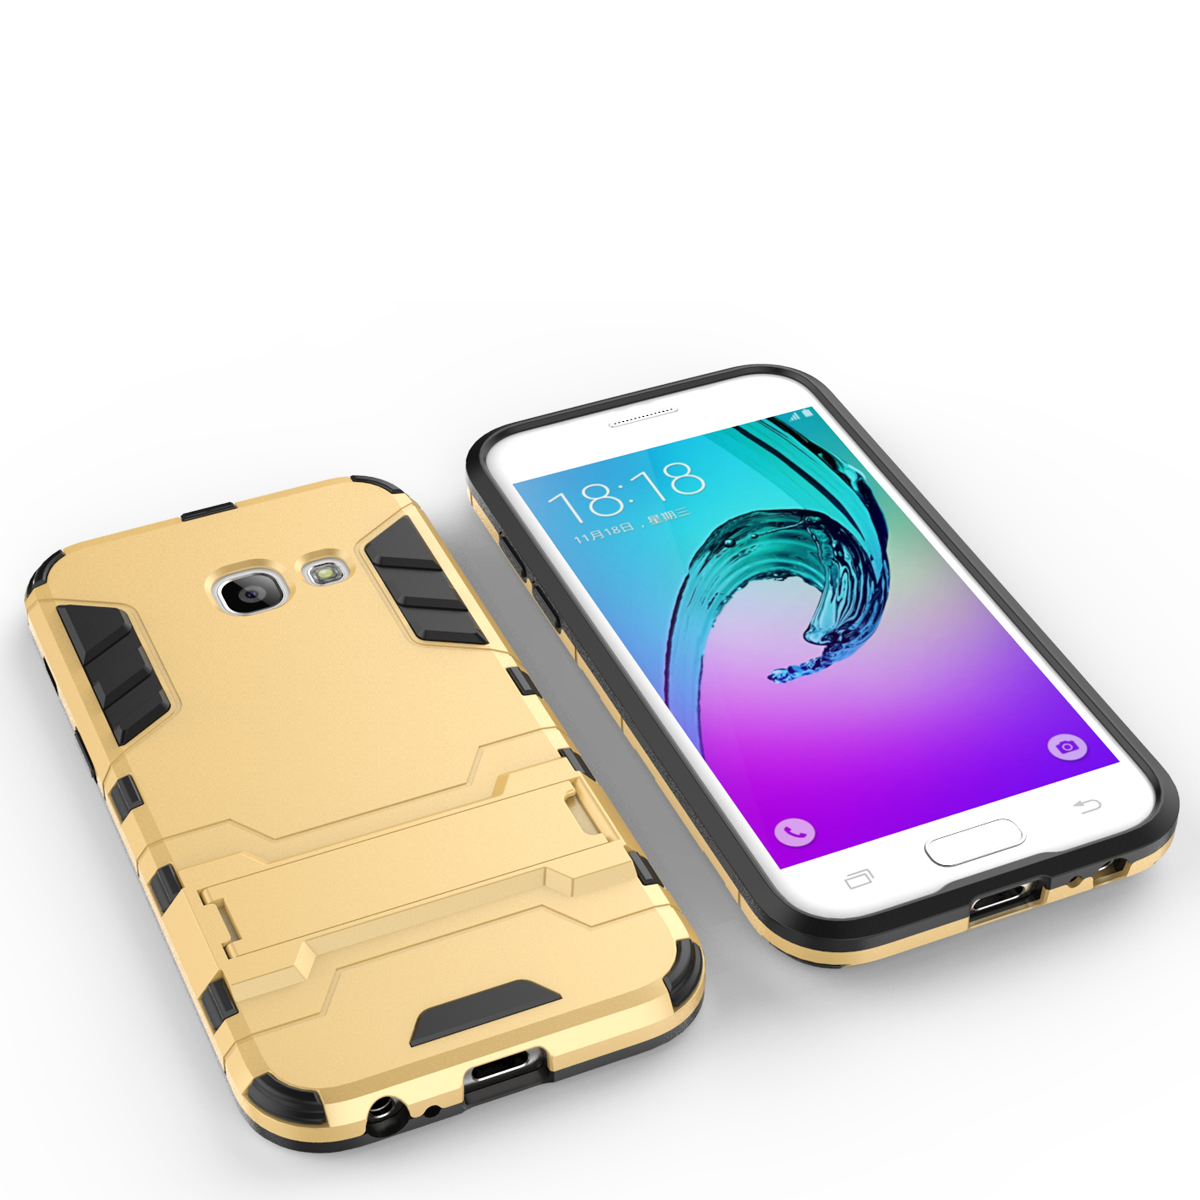 Armor Kickstand Protective Phone Cover Case for Samsung Galaxy A3 (2017) - Gold